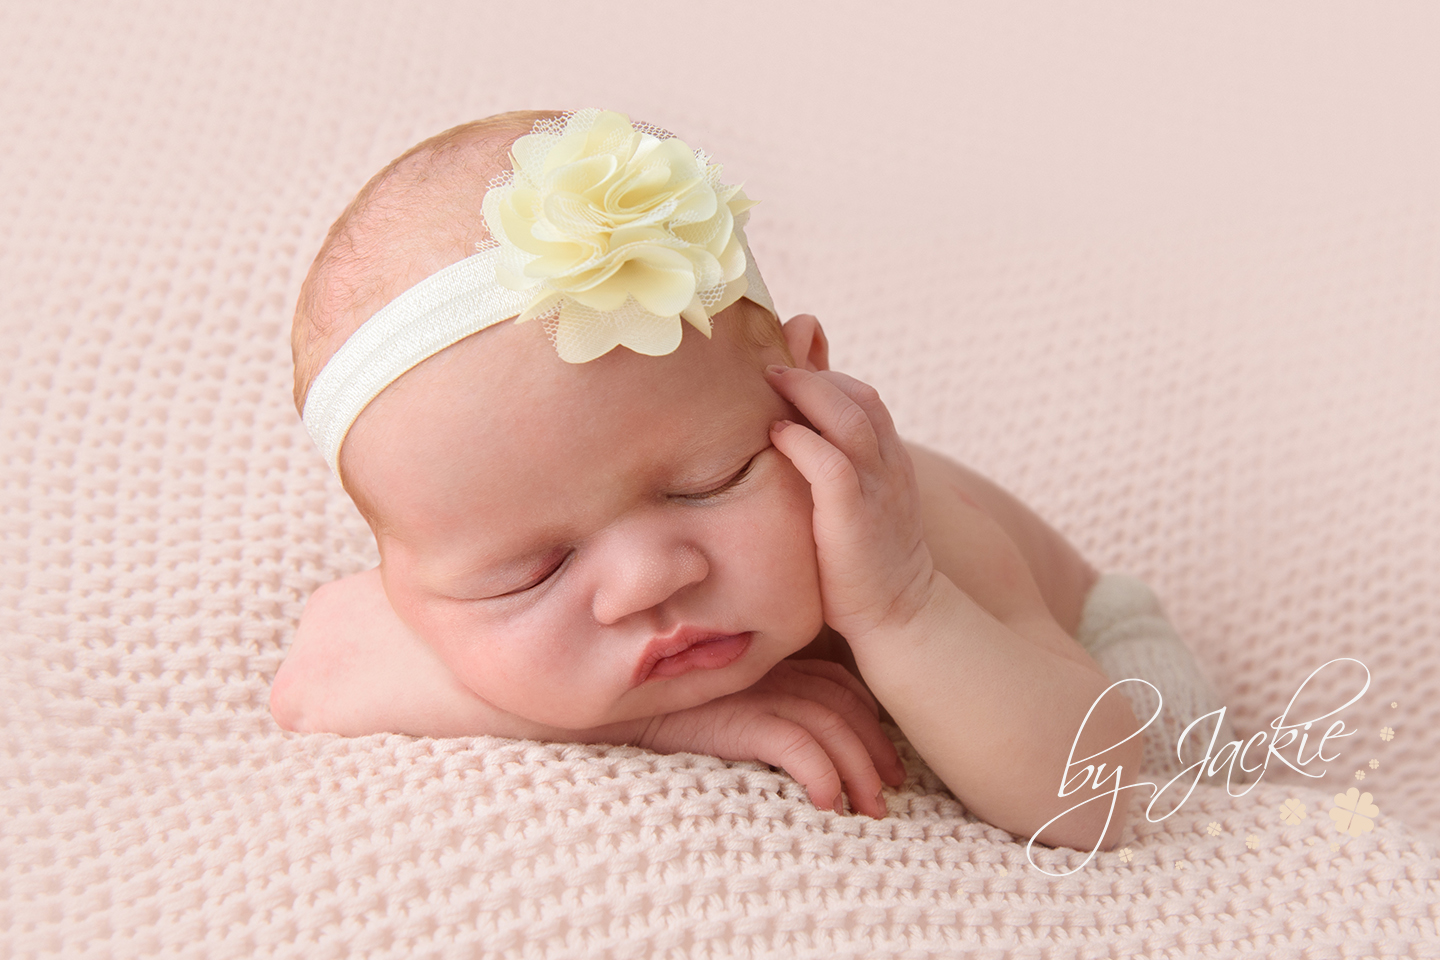 Newborn baby girl, photograph by Babies By Jackie, near Beverley, Hull, Hessle, Howden and York in Yorkshire UK